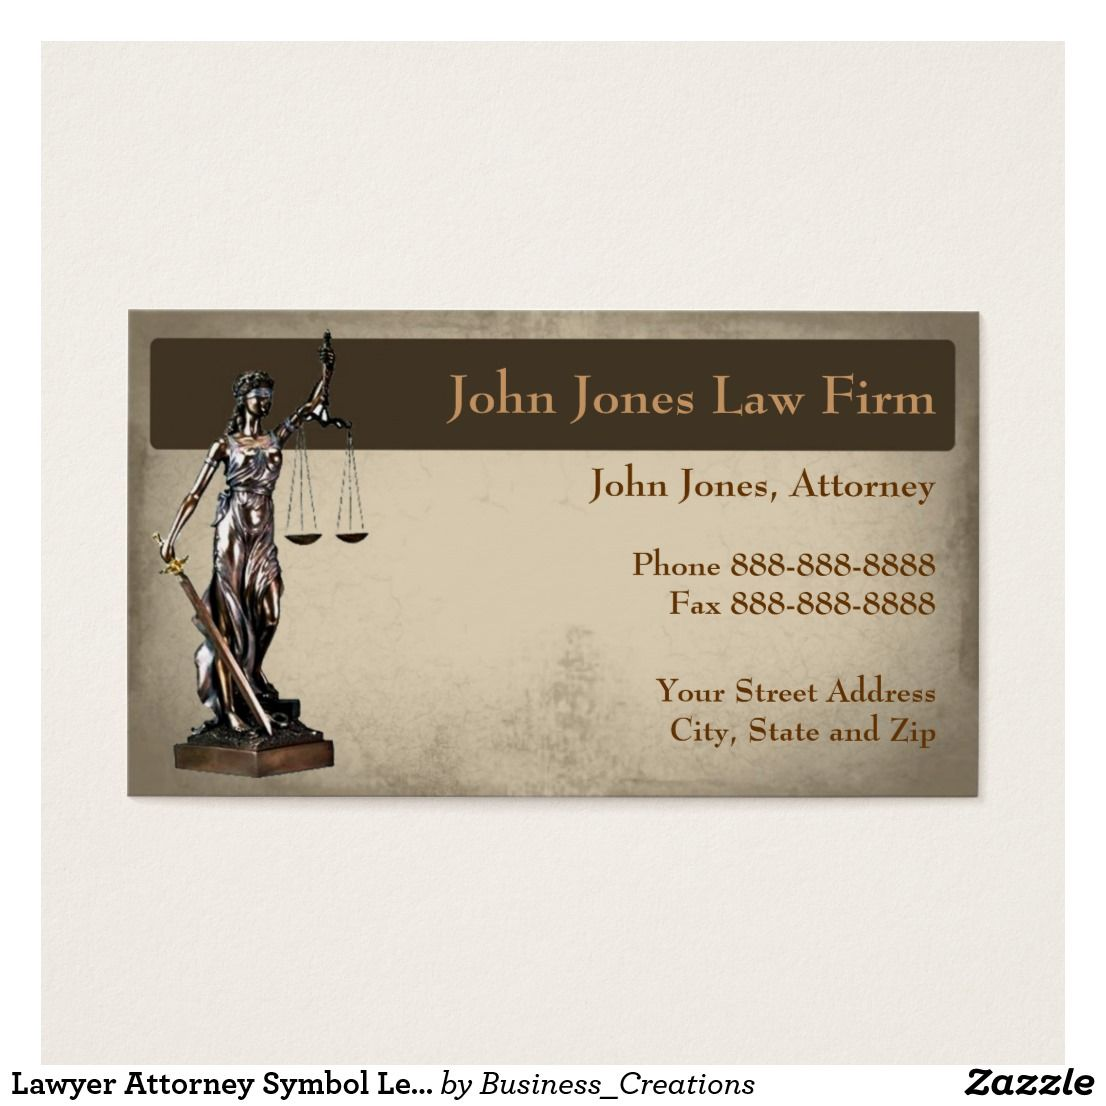 Lawyer Attorney Symbol Legal Business Card | Legal business and ...